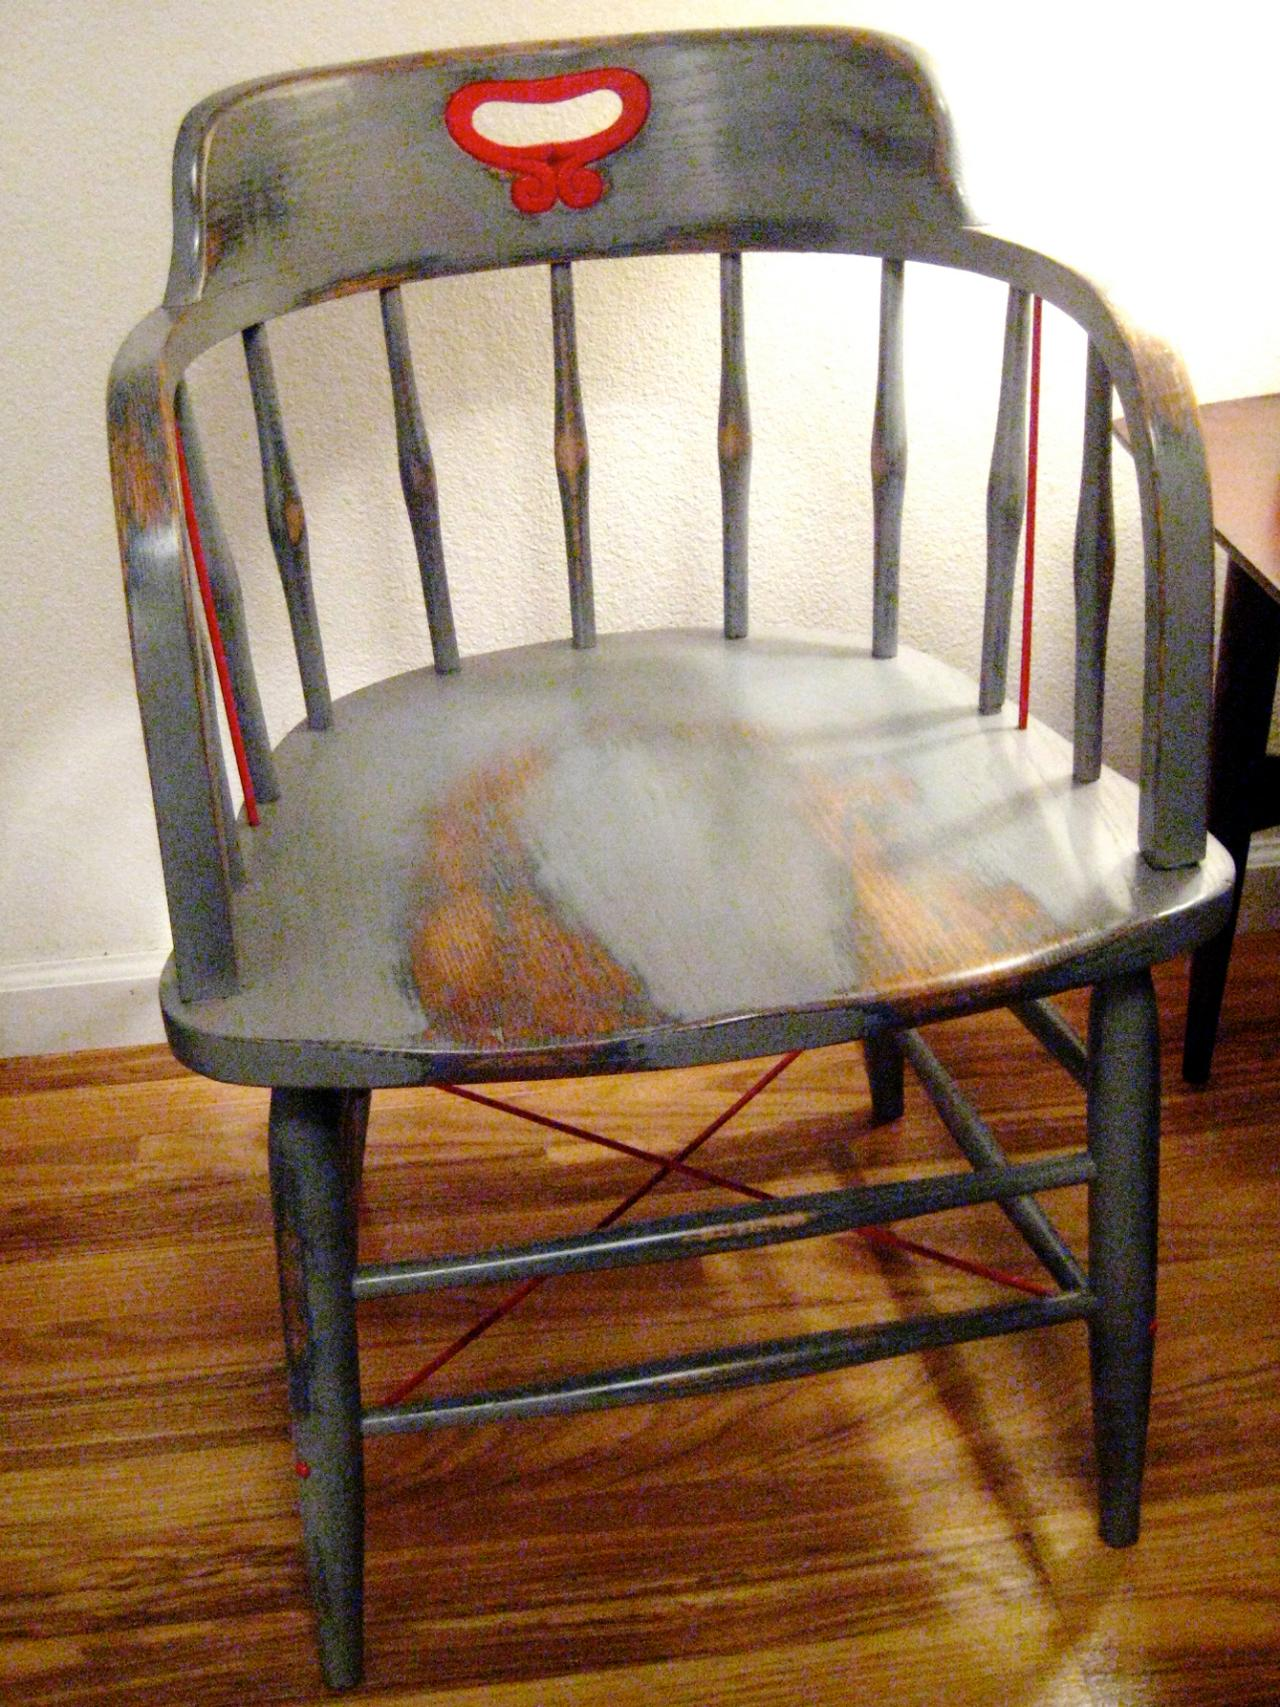 Chair Before Refinishing. How to Paint Wood Furniture With an Aged Look   how tos   DIY